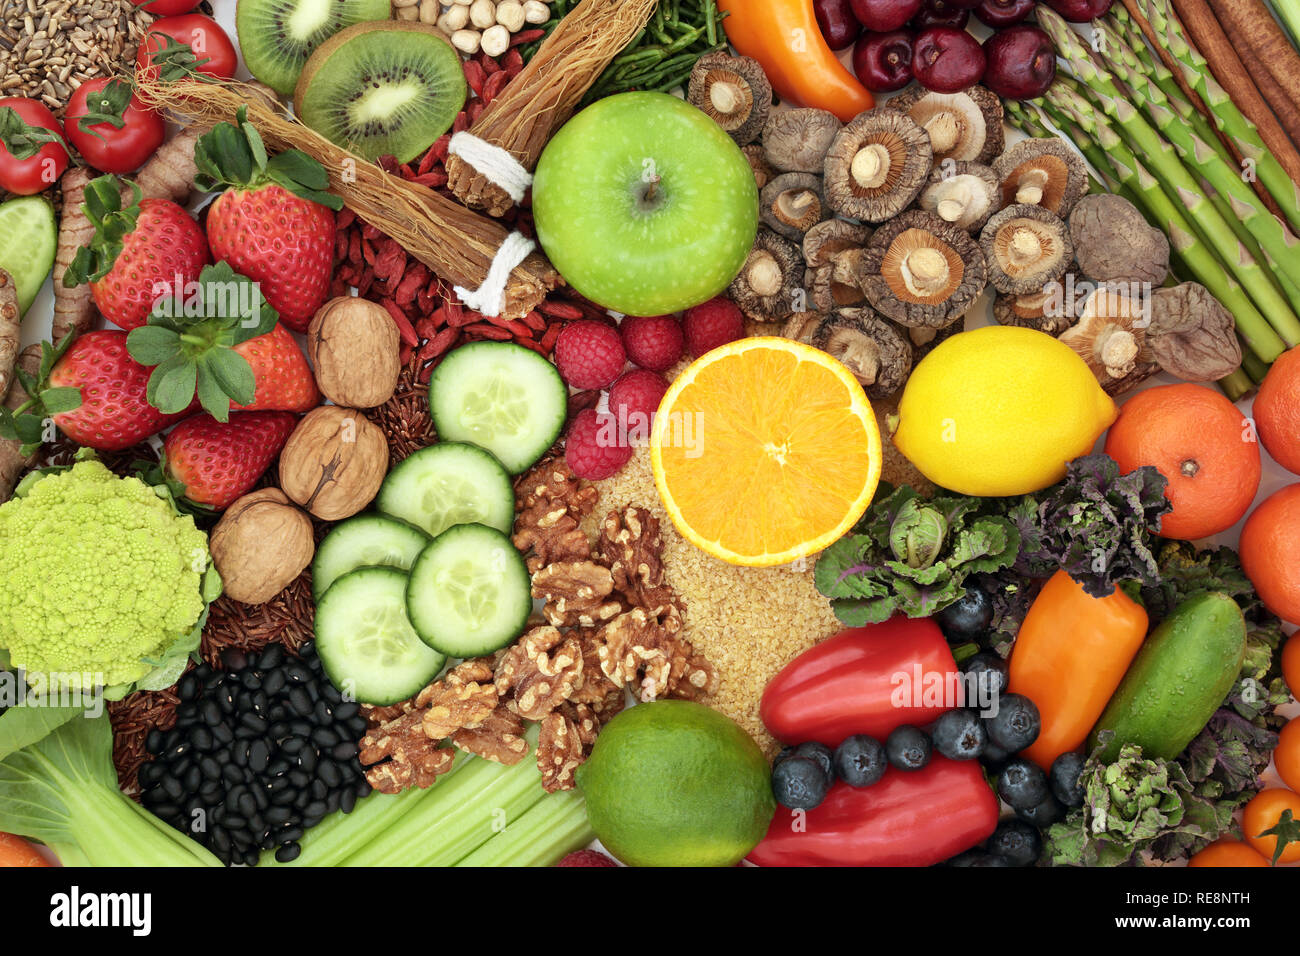 Liver detox health food concept with fresh fruit, vegetables, herbs, spices, nuts, grains and seeds. High in antioxidants & vitamins.. - Stock Image